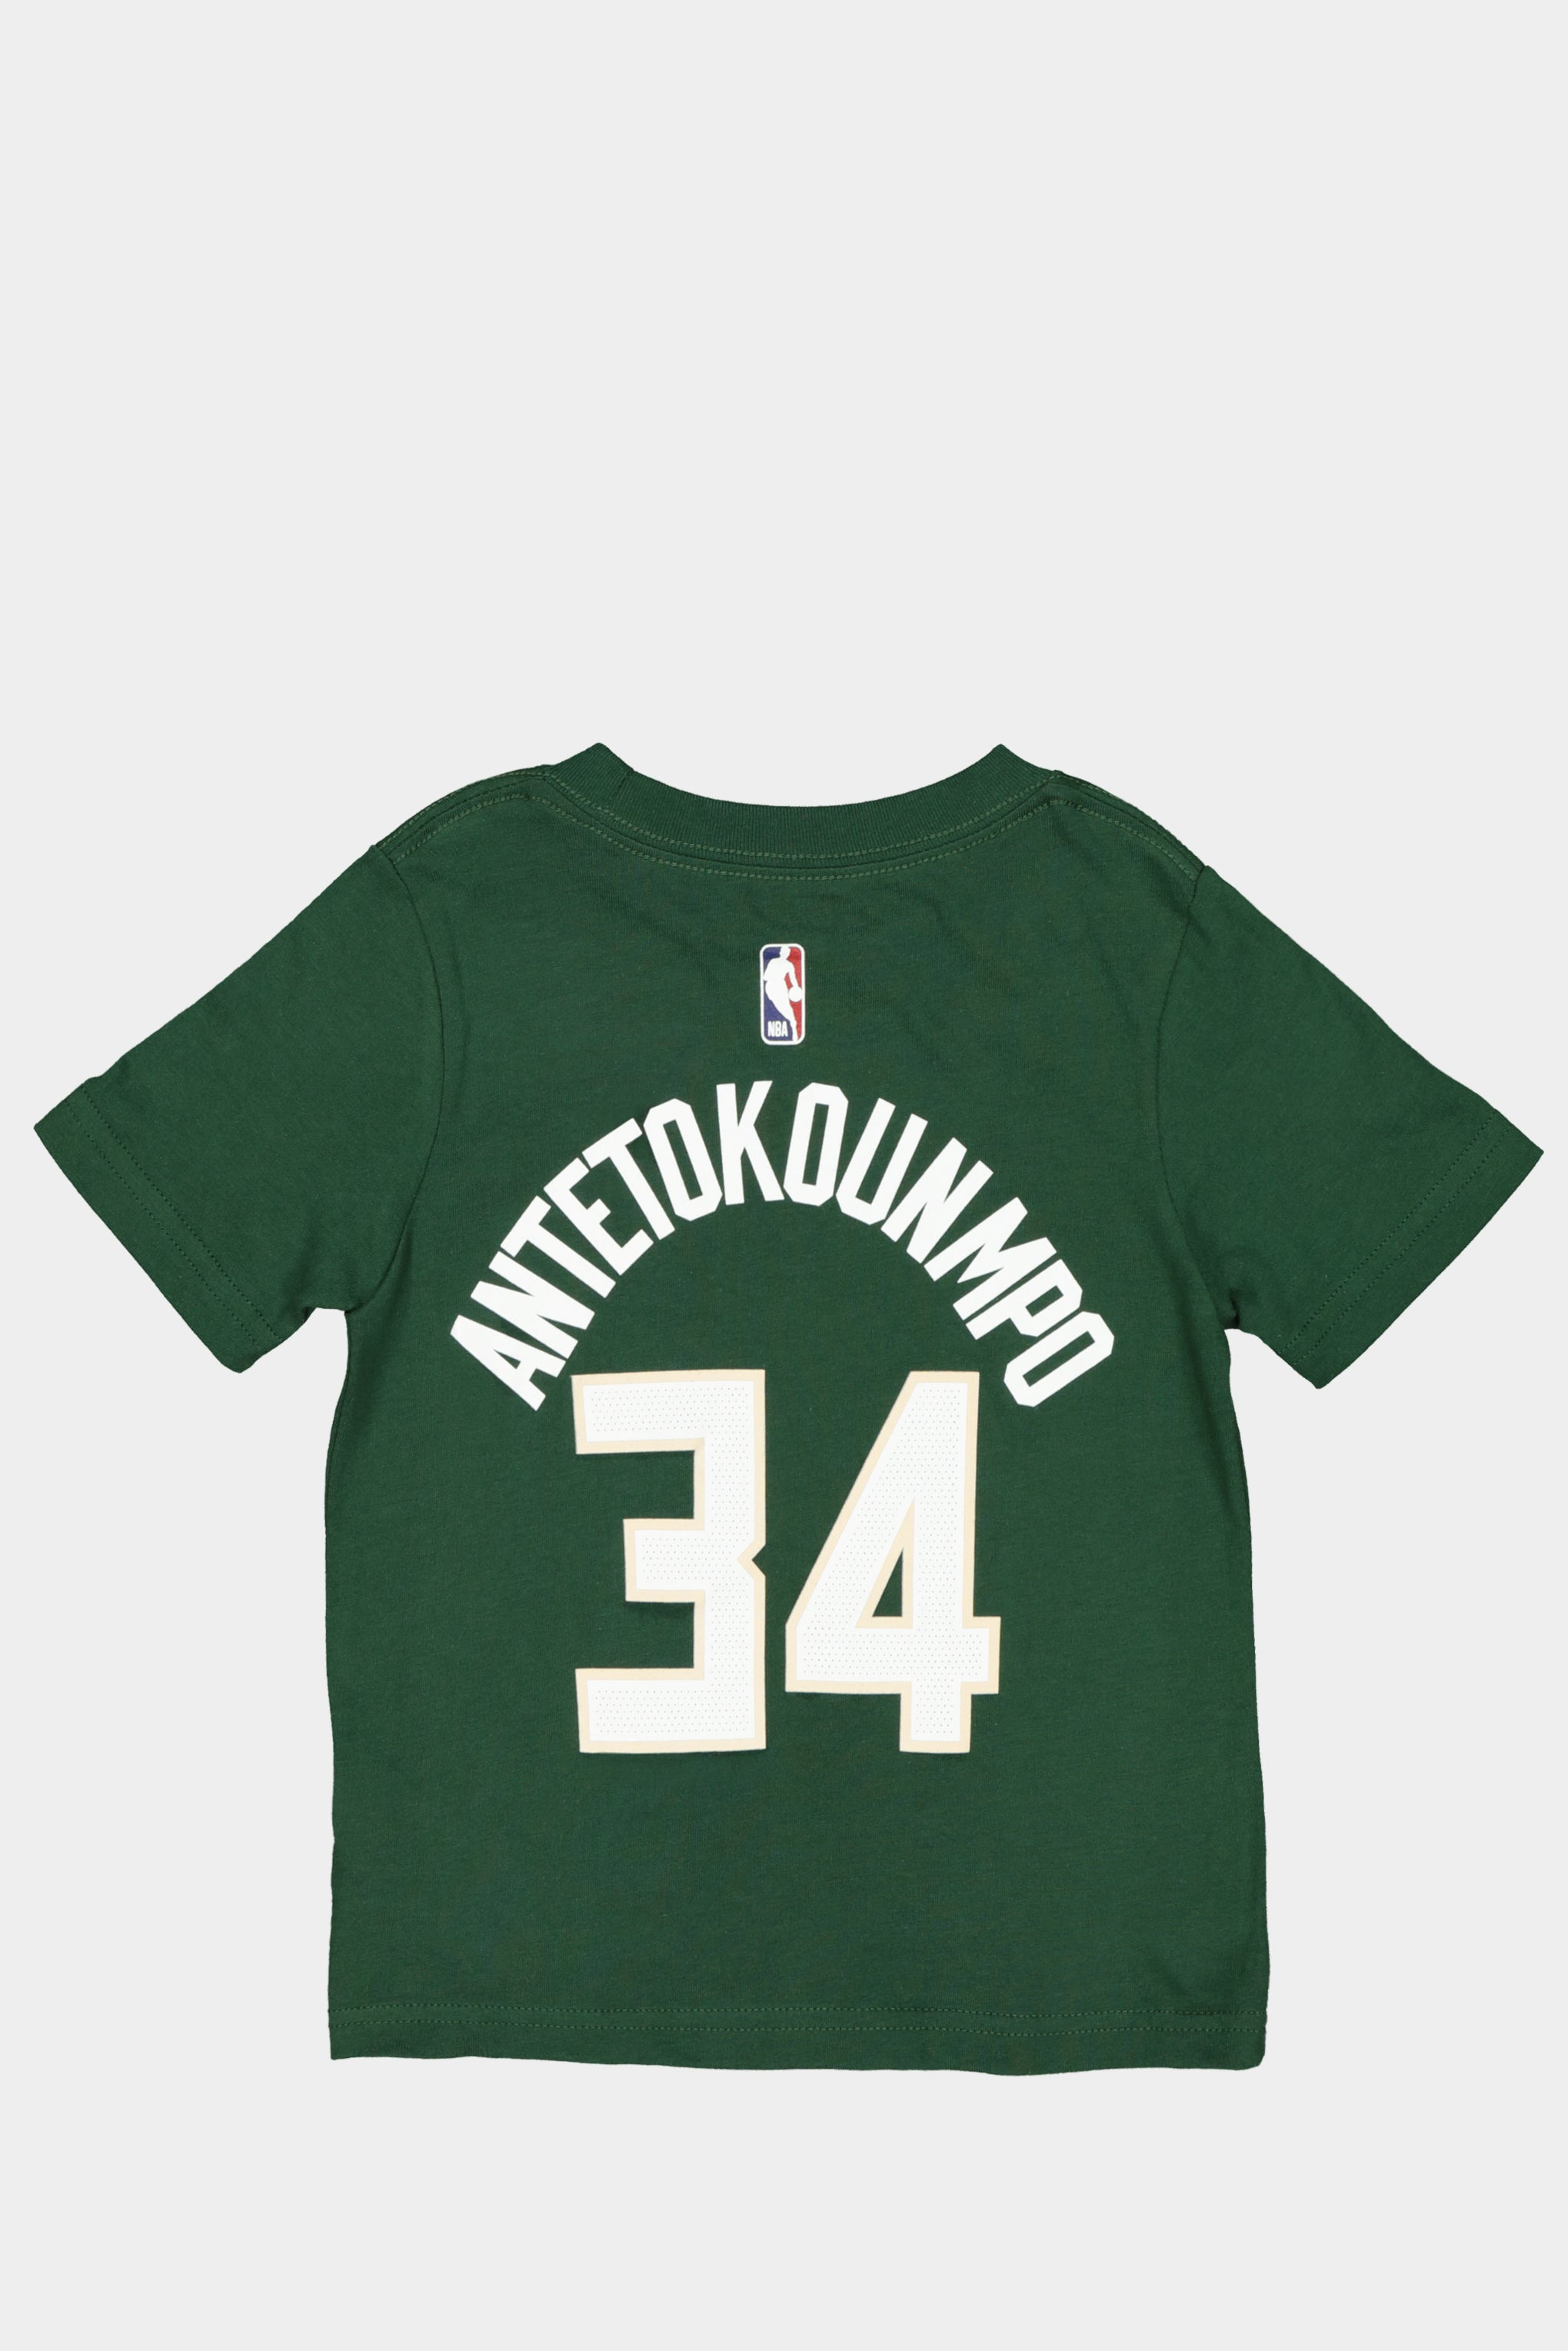 goAgoo Antetokoumpo Bucks Short Sleeve Tee for Boys Kids Youth Logo on Shirt